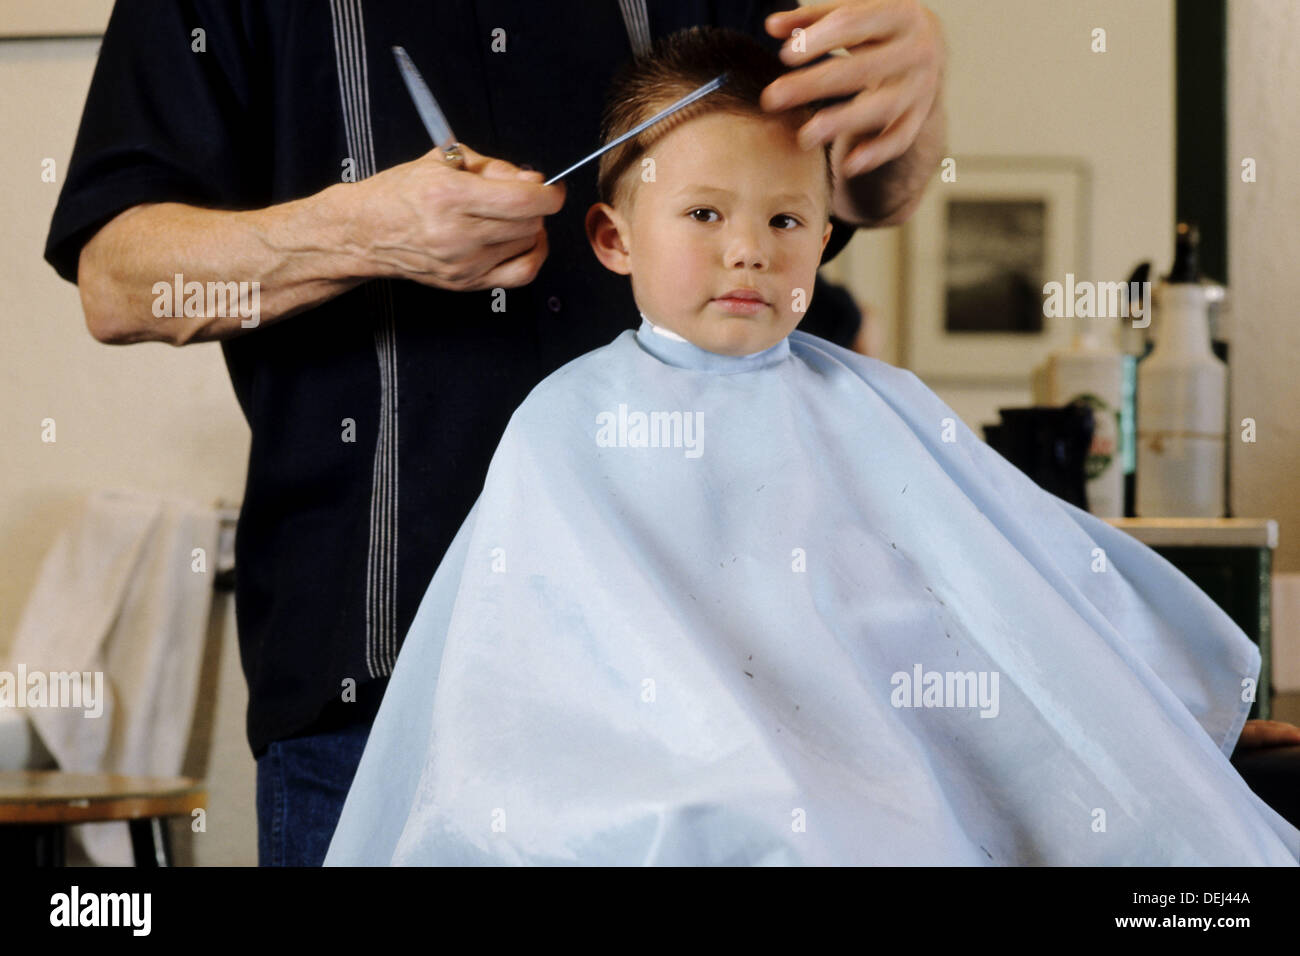 Mens haircut san mateo the best haircut of 2018 haircut san antonio gallery ideas for women and man winobraniefo Image collections